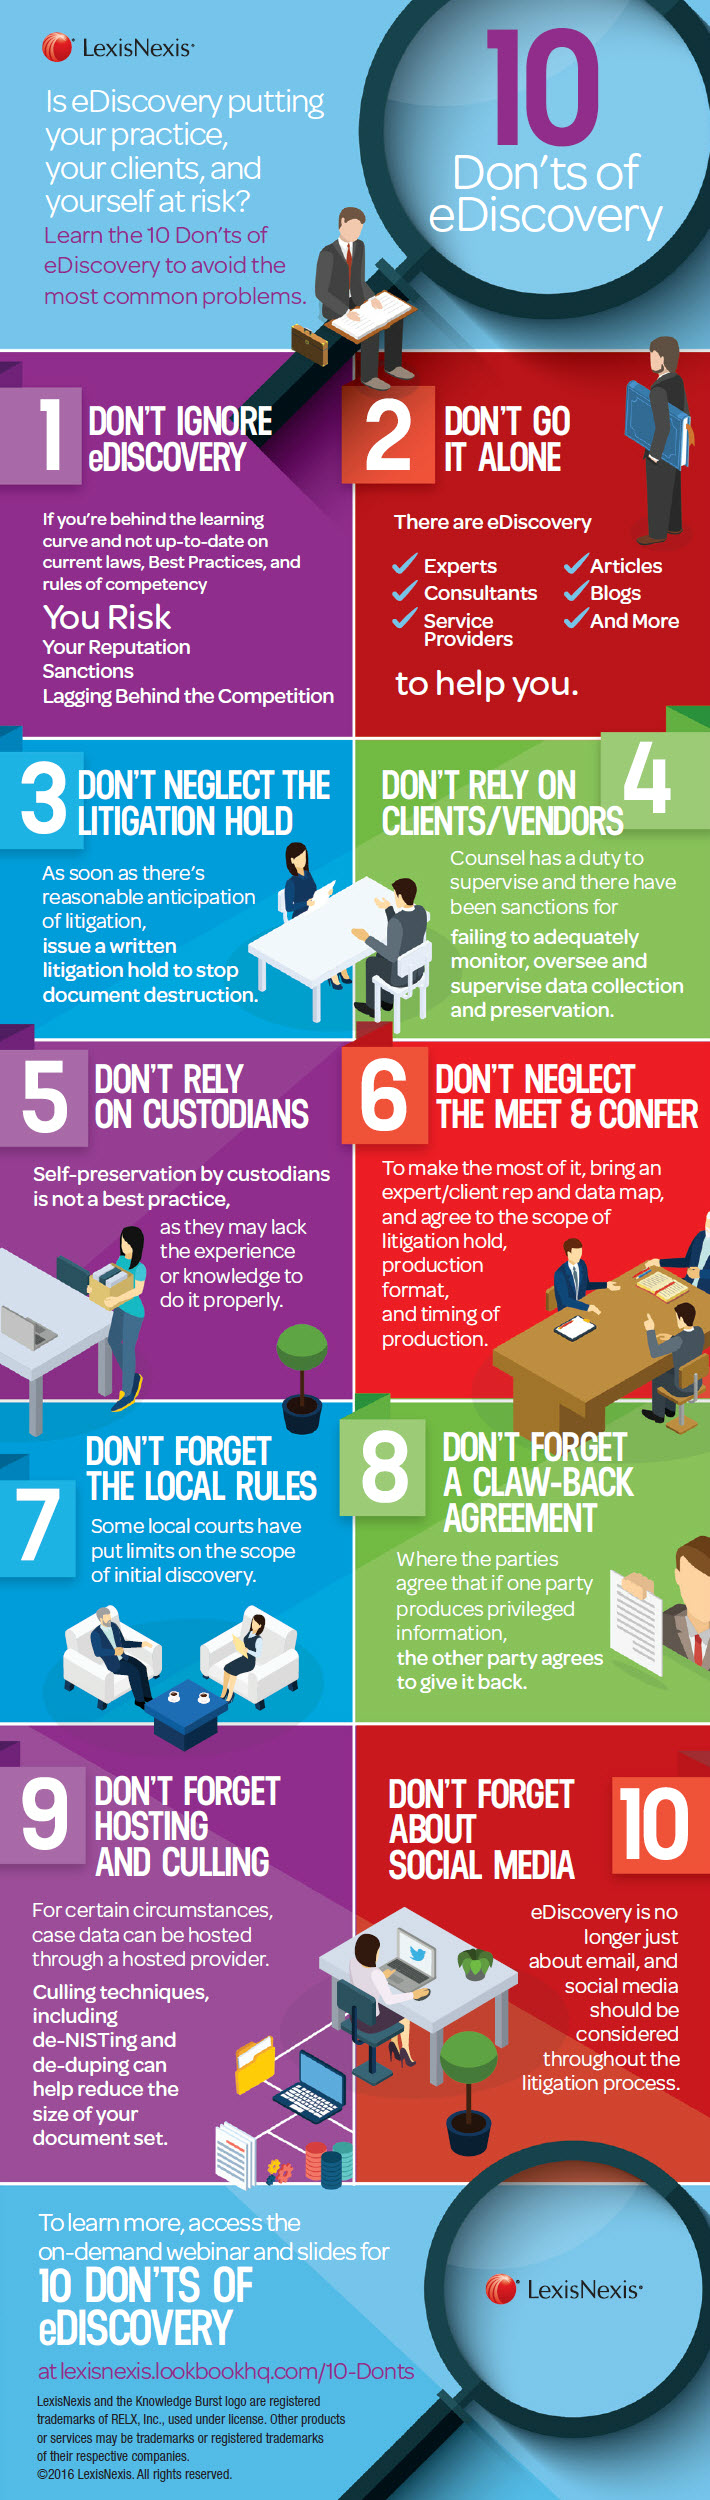 10-donts-ediscovery-infographic